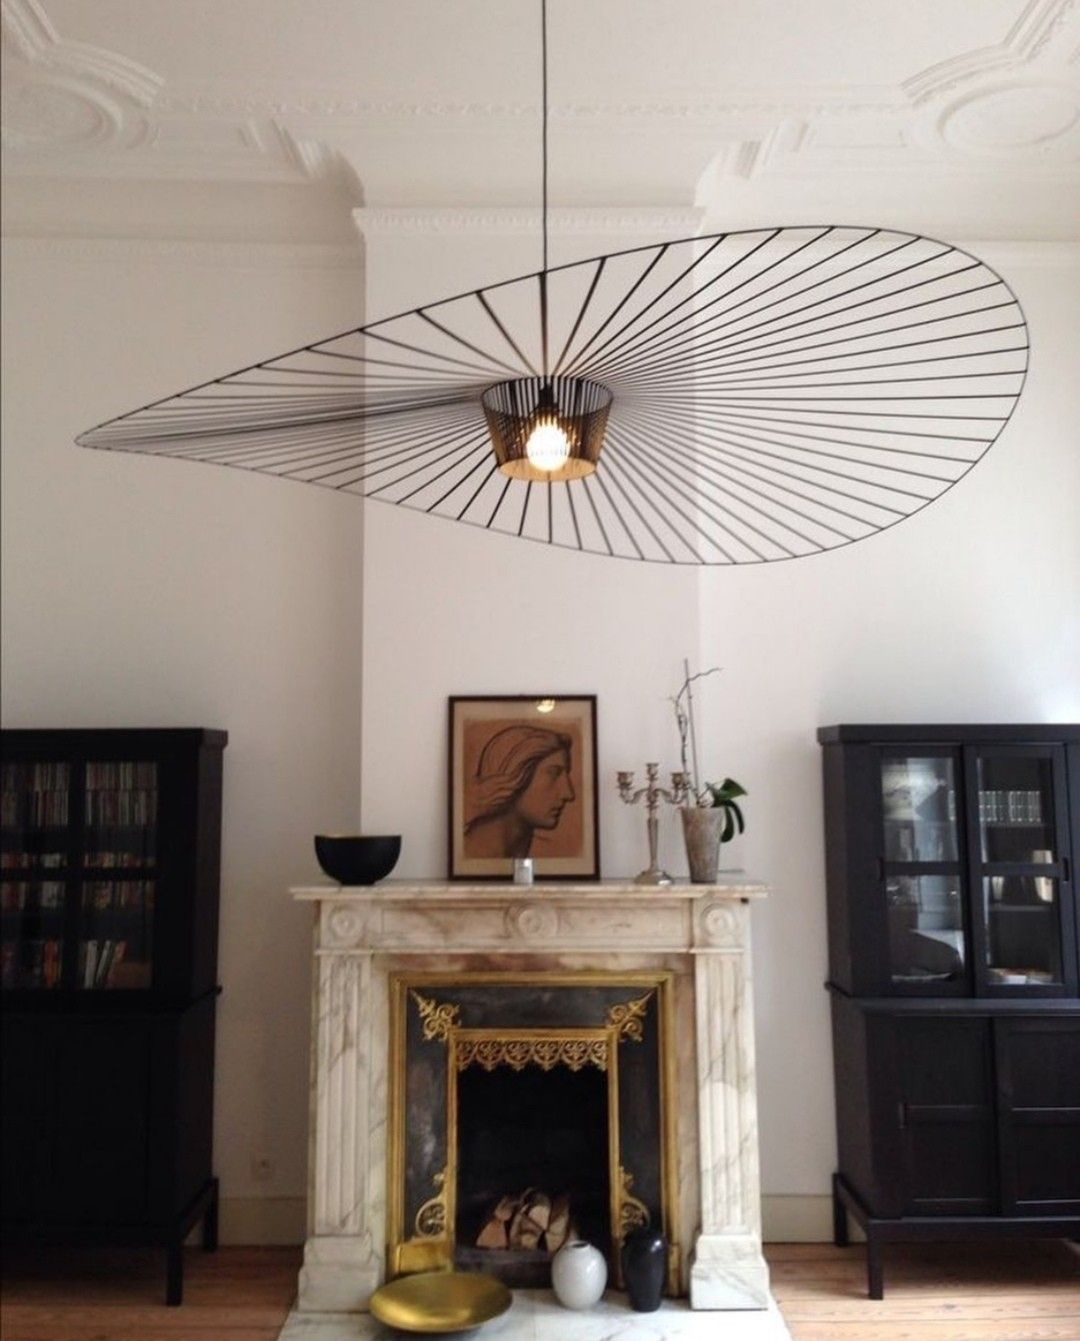 Pin By Maddy Wood On Decor In 2020 Modern Living Room Lighting Living Room Lighting Stairs Design